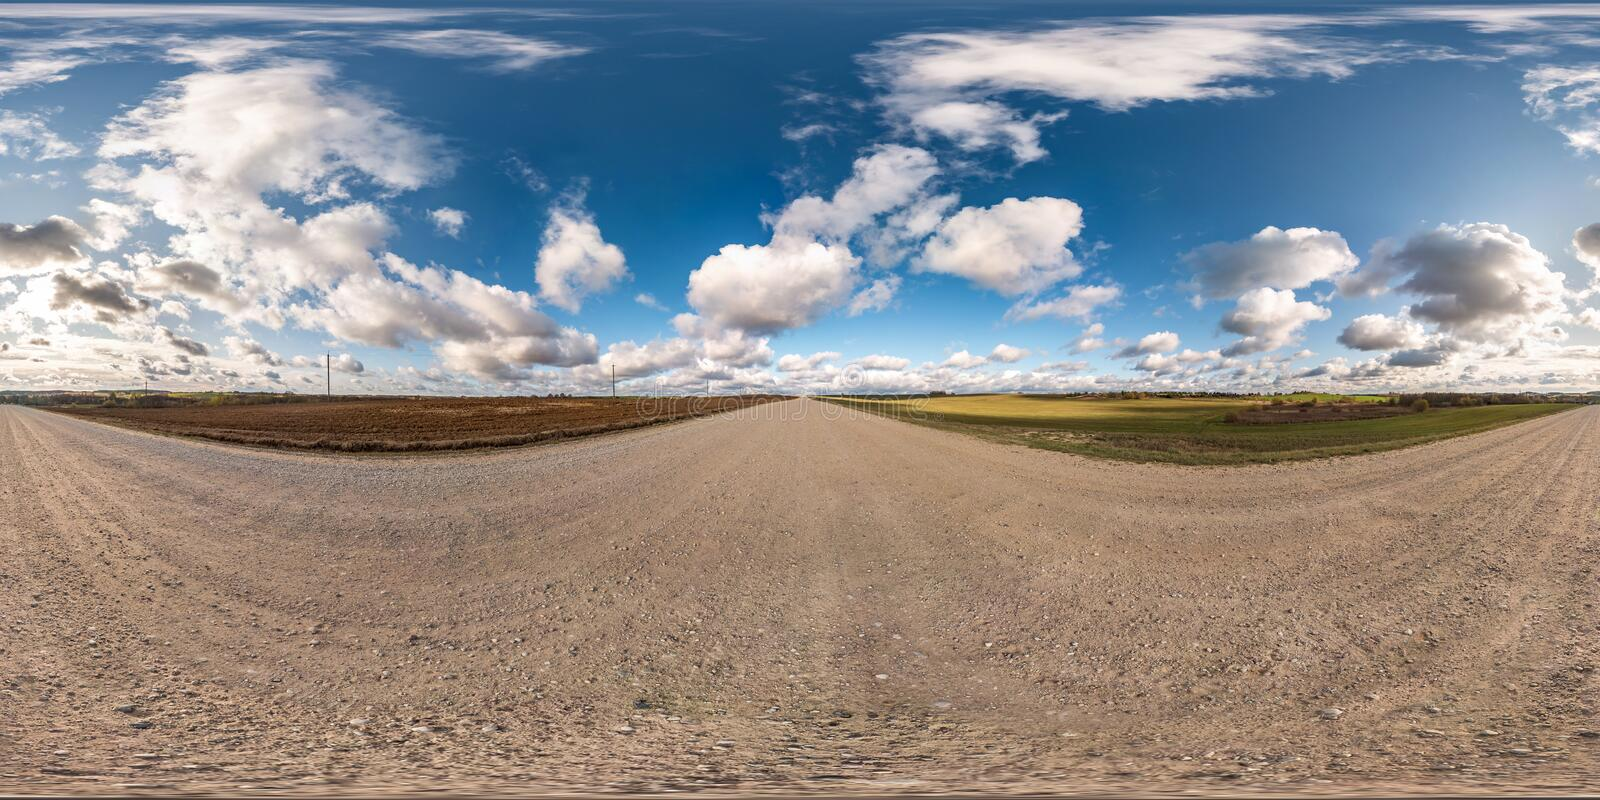 Blue sky with rain storm fluffy clouds. full seamless eamless hdri panorama 360 degrees angle view on gravel road with zenith in royalty free stock photography